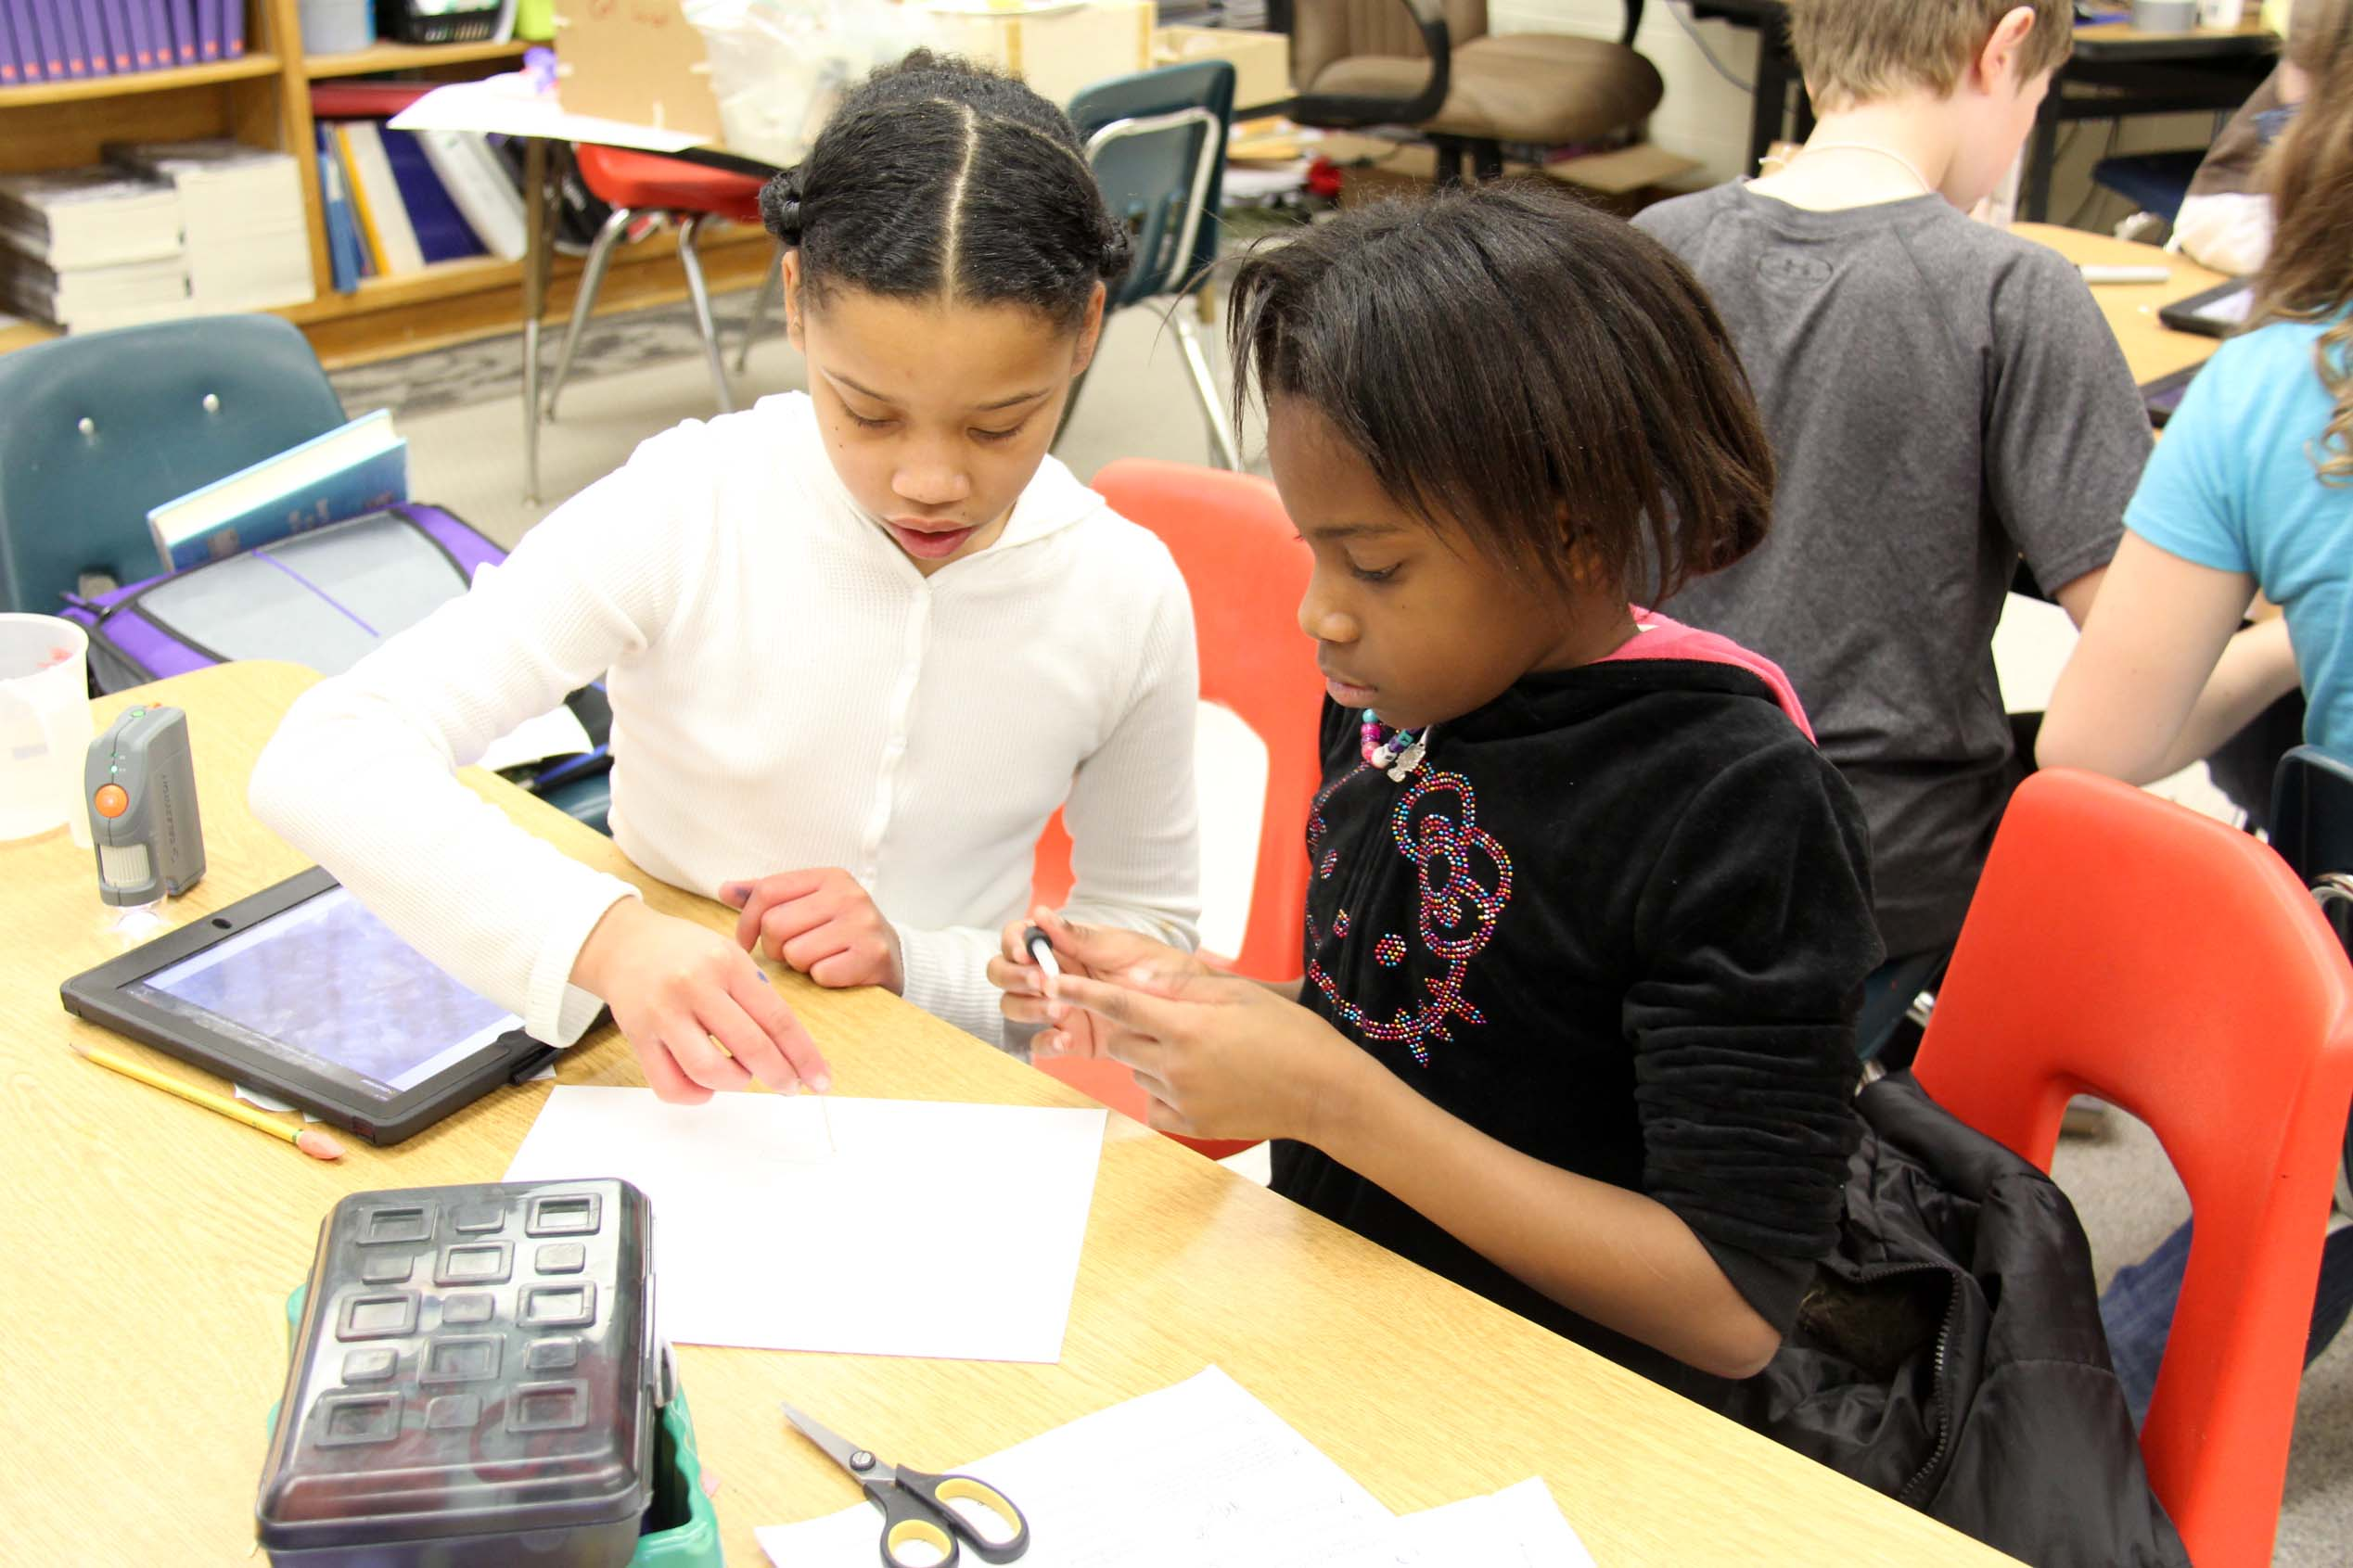 Students work to prepare slides for their microscope.